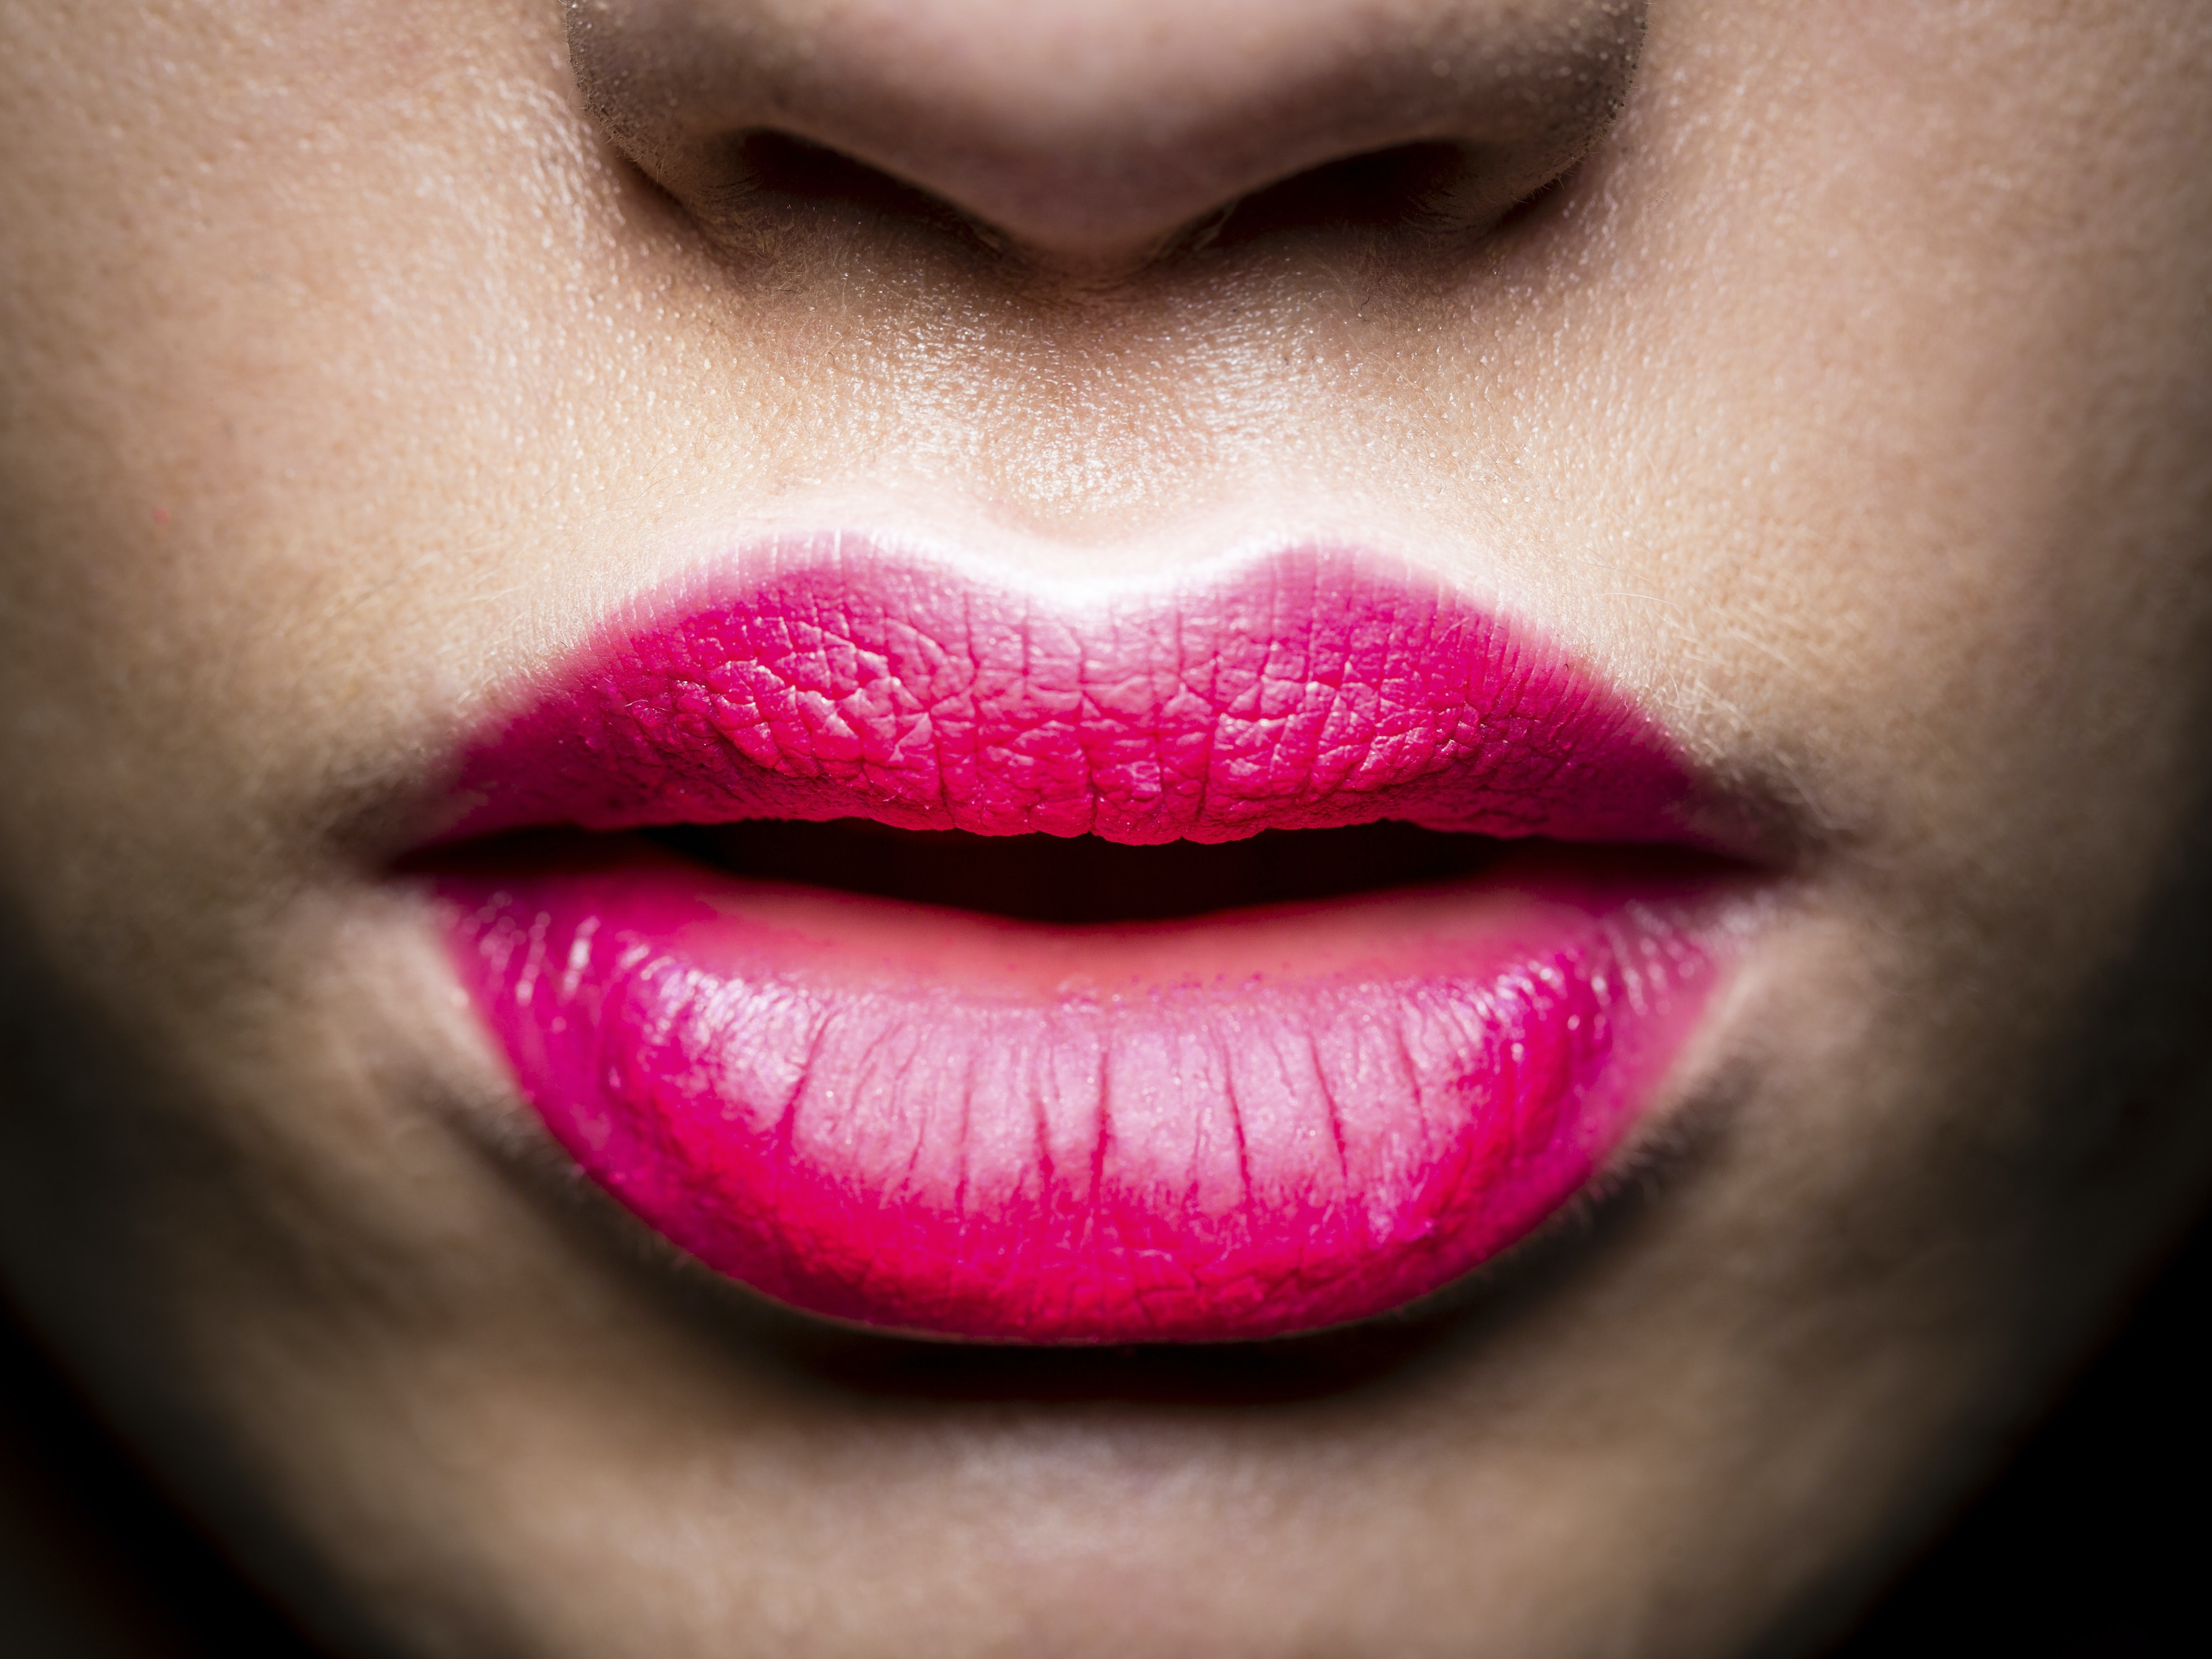 Google Taught A.I. to Read Lips Better Than Humans